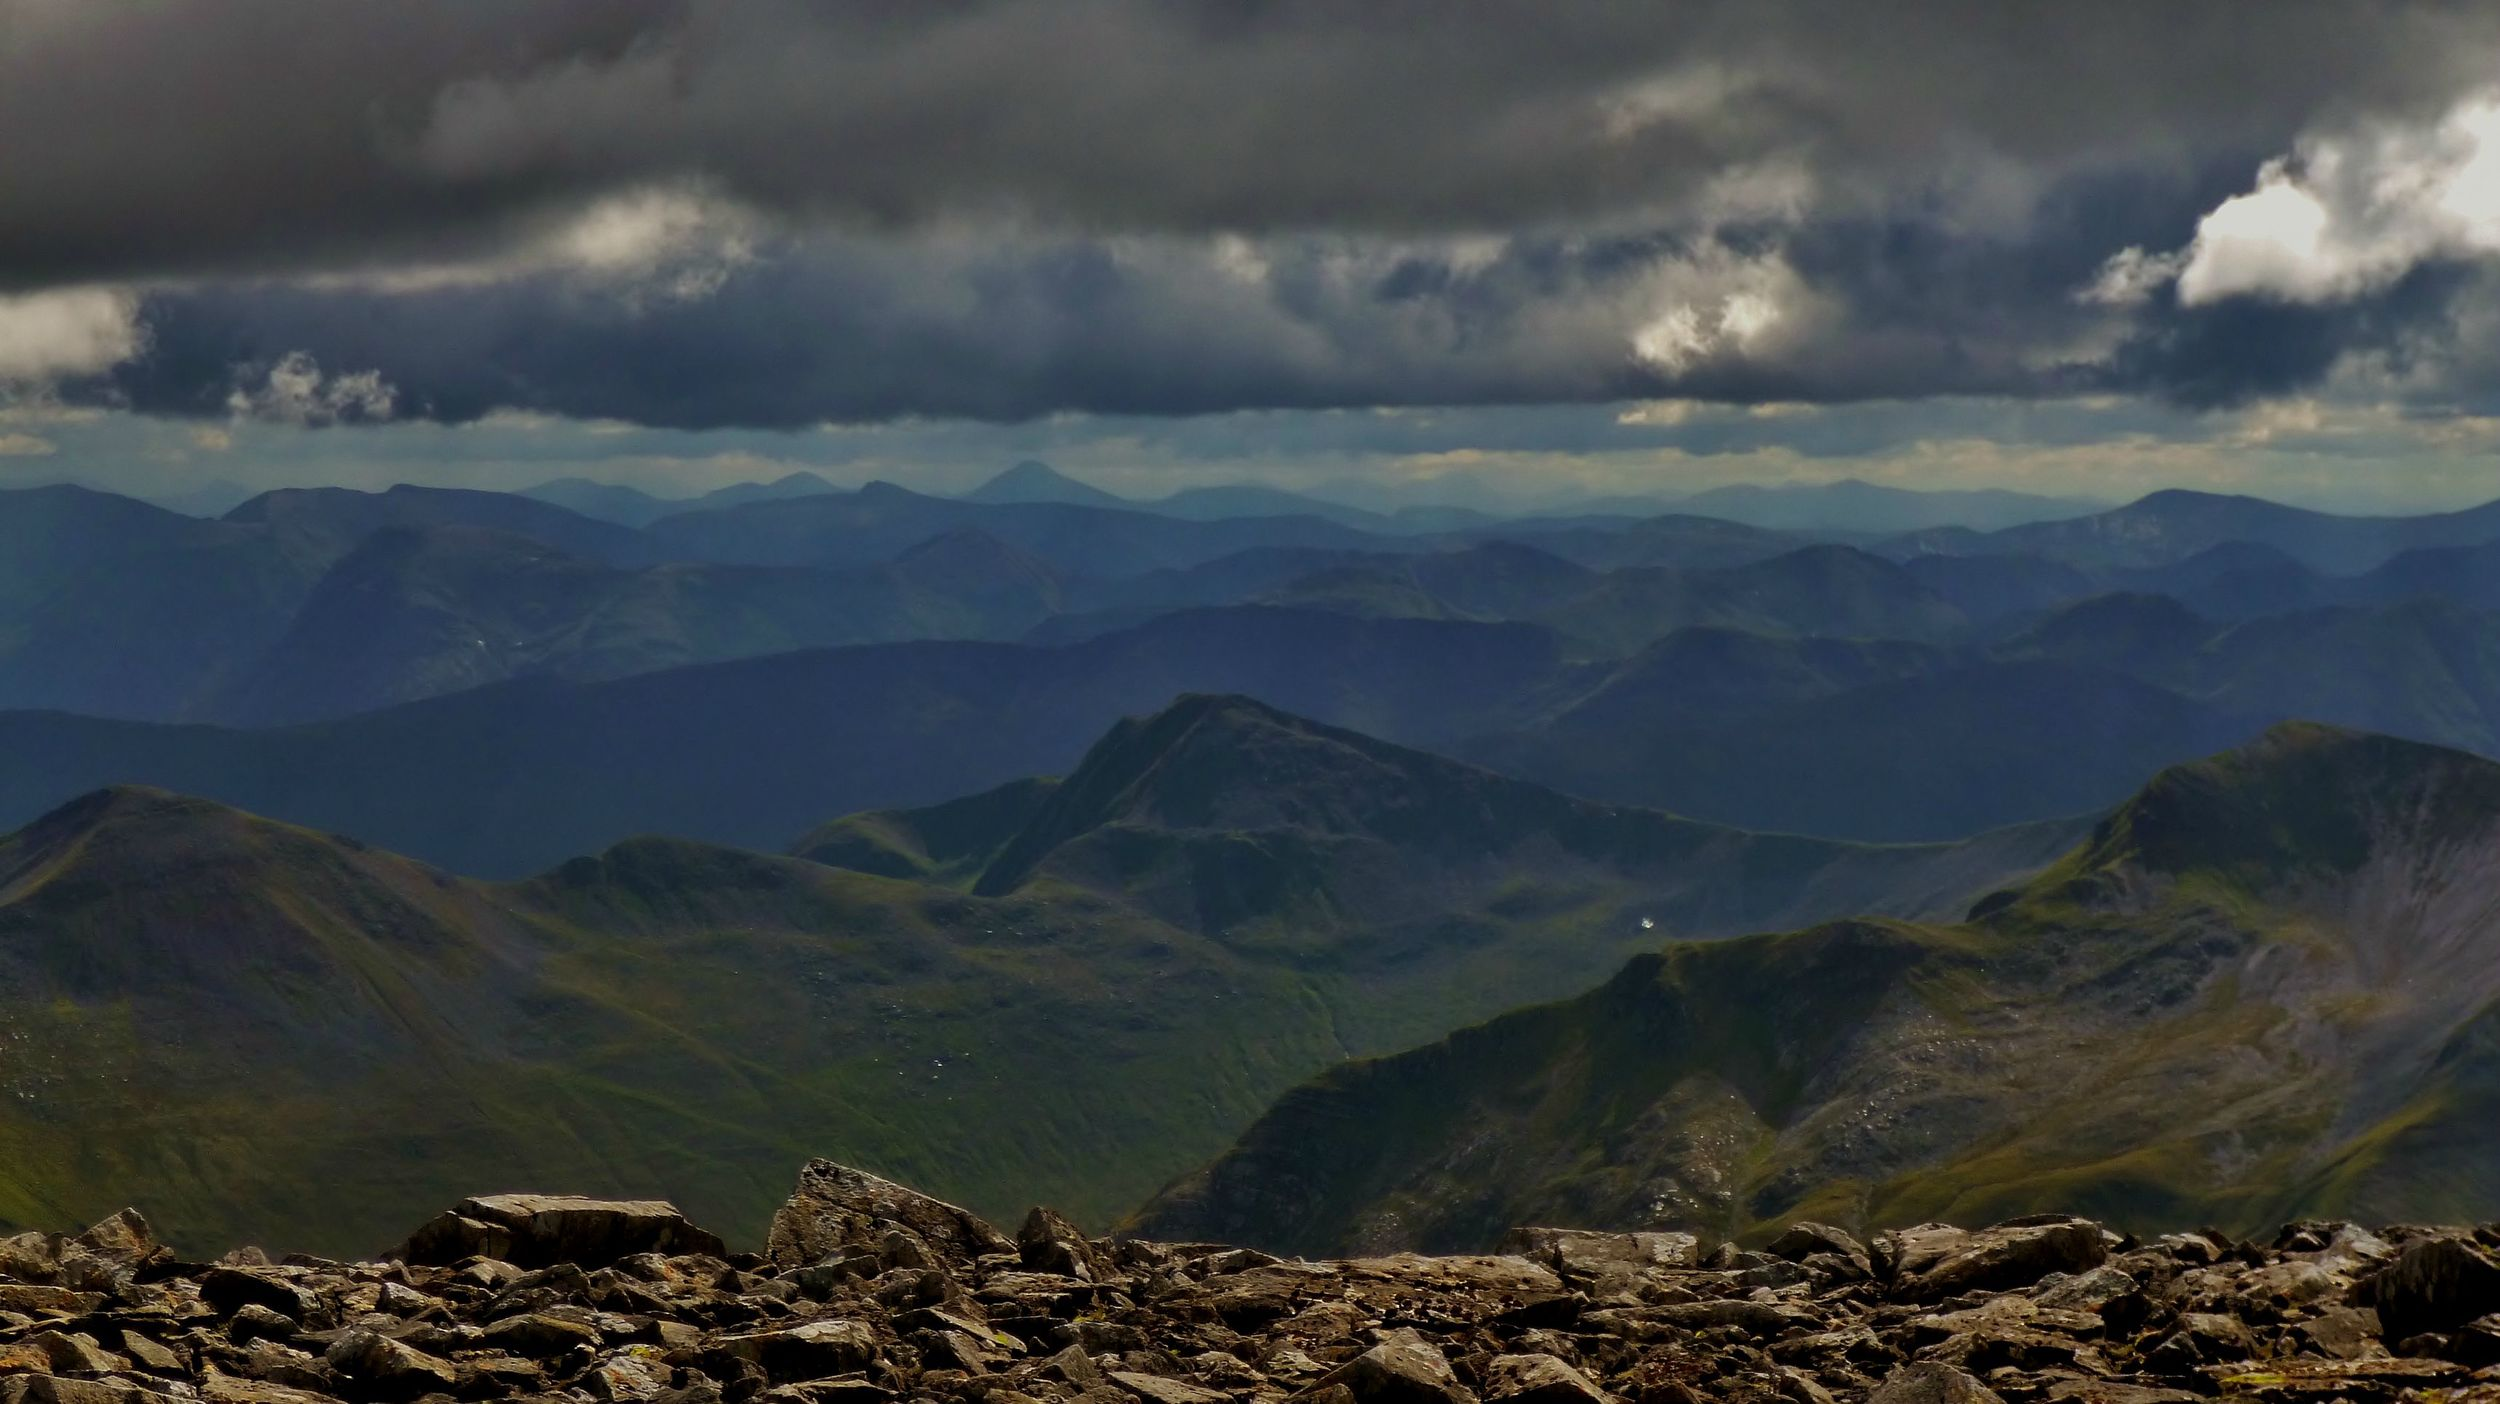 The view from Ben Nevis in the UK